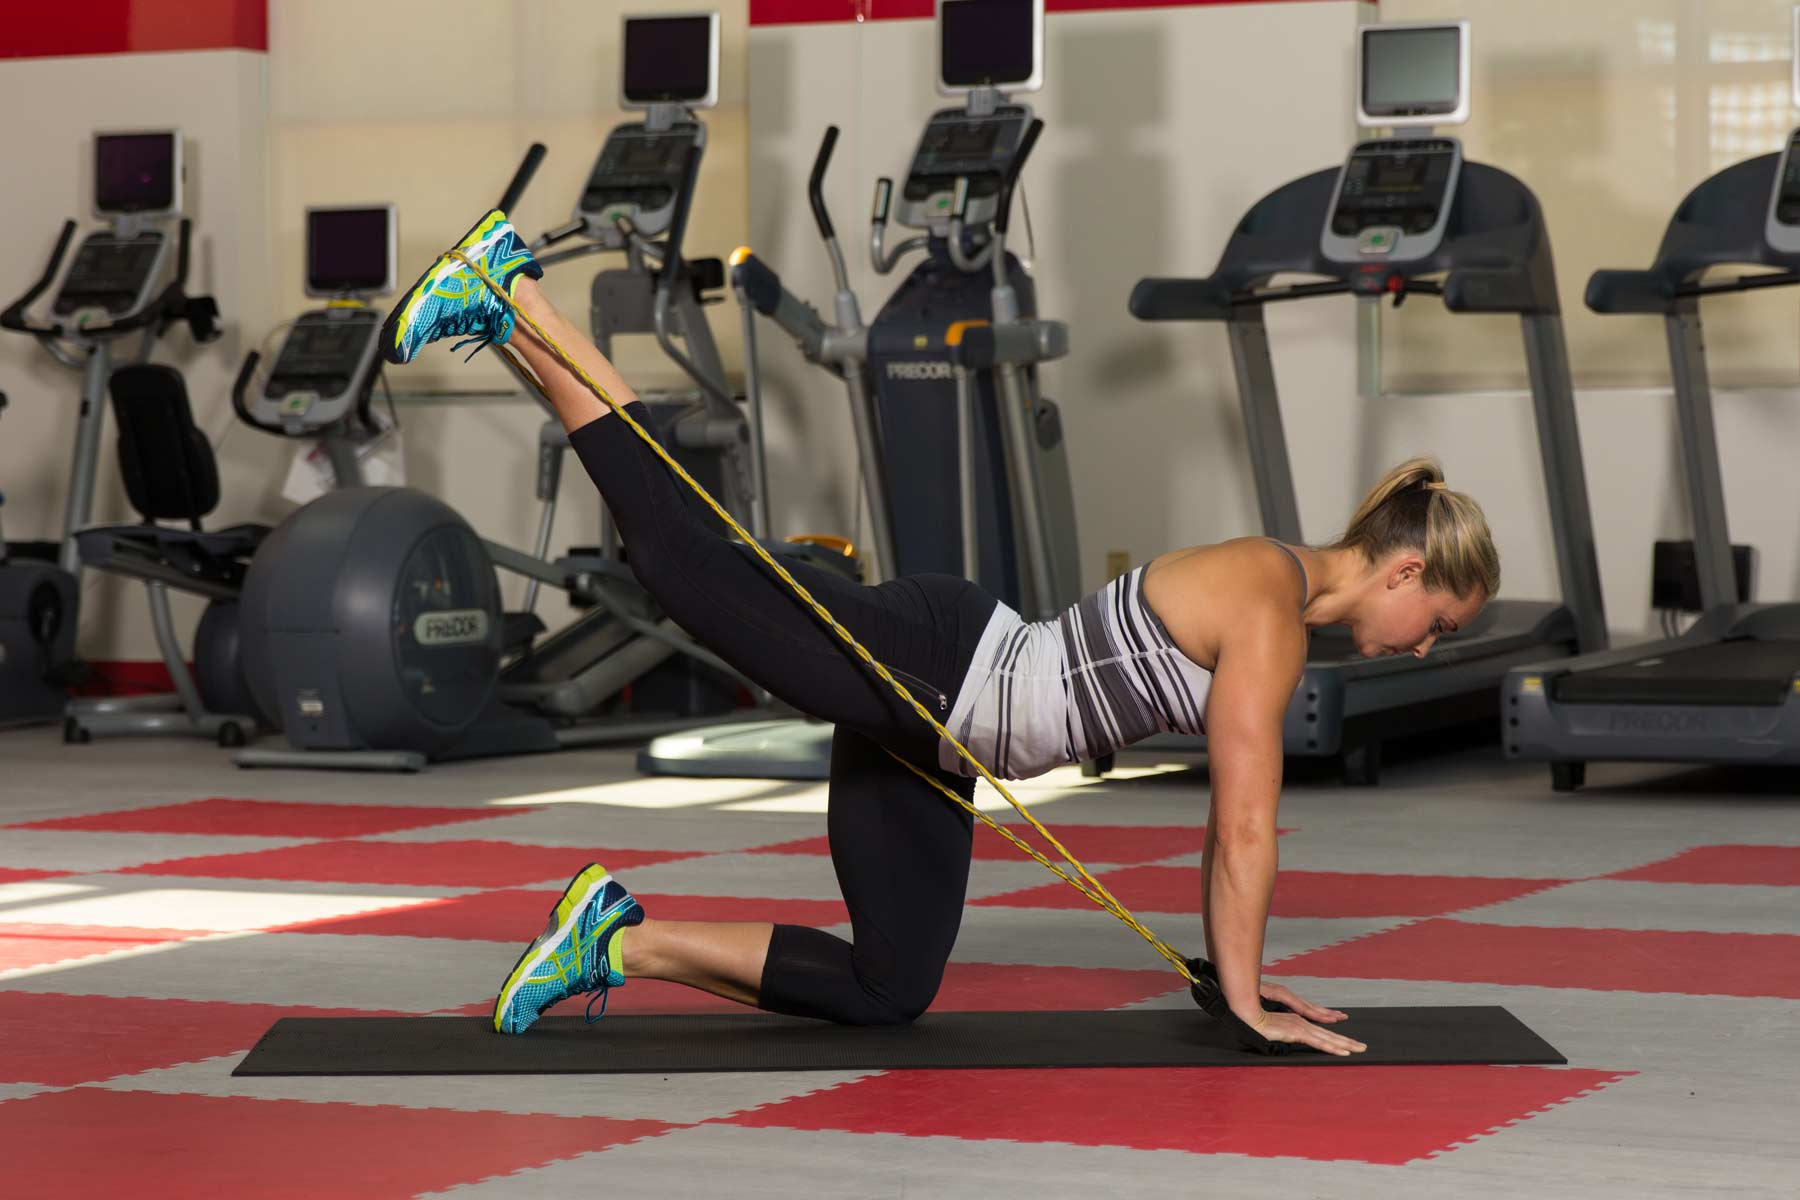 6 Moves for Stronger Glutes | Jacqueline Crockford | Expert Articles | 8/7/2014